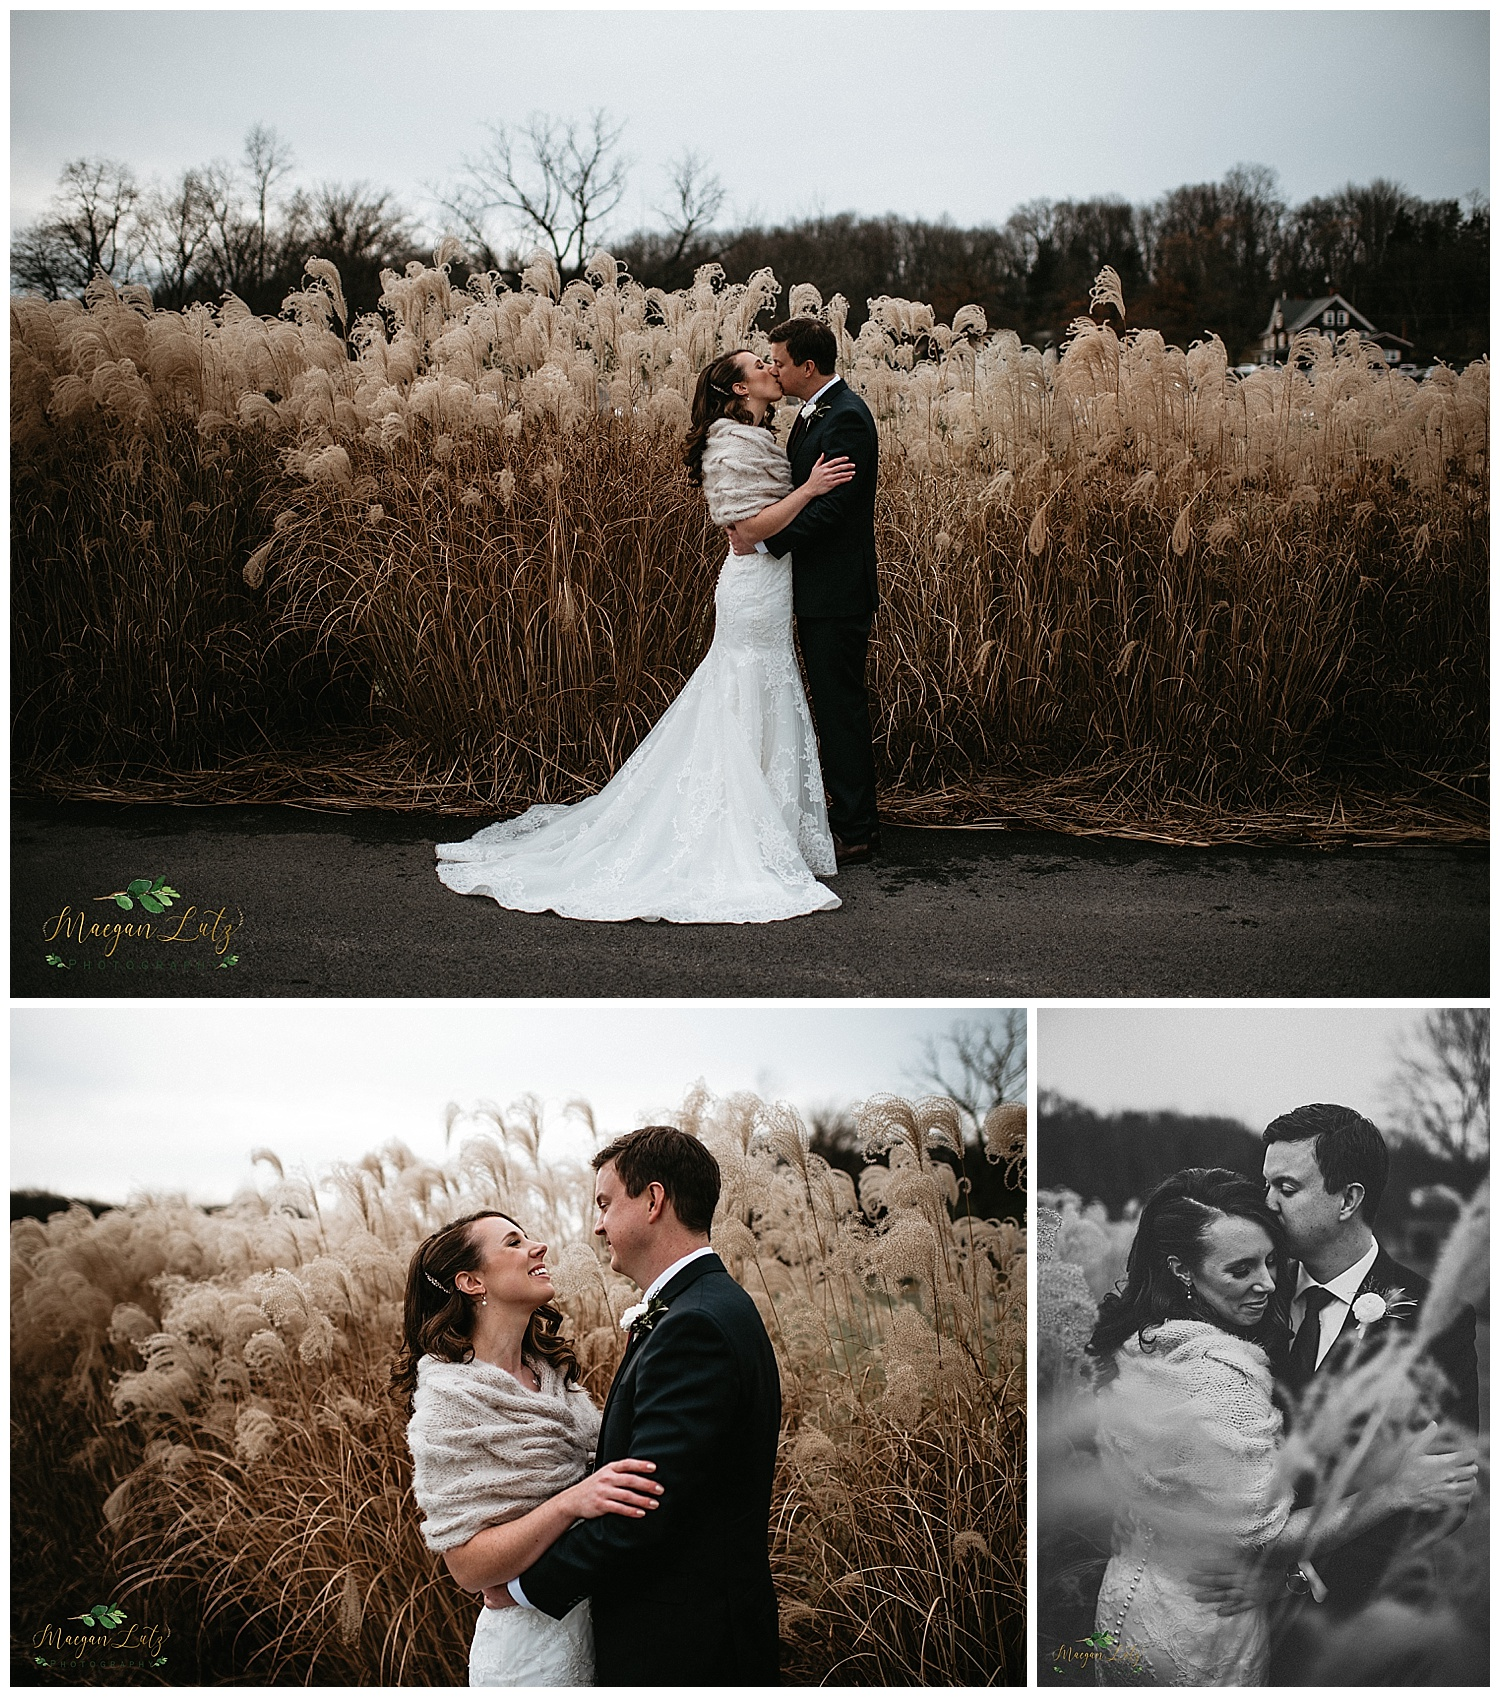 NEPA-wedding-photographer-at-Farmstead-Golf-and-country-club-LaFayette-Township-New-Jersey_0025.jpg